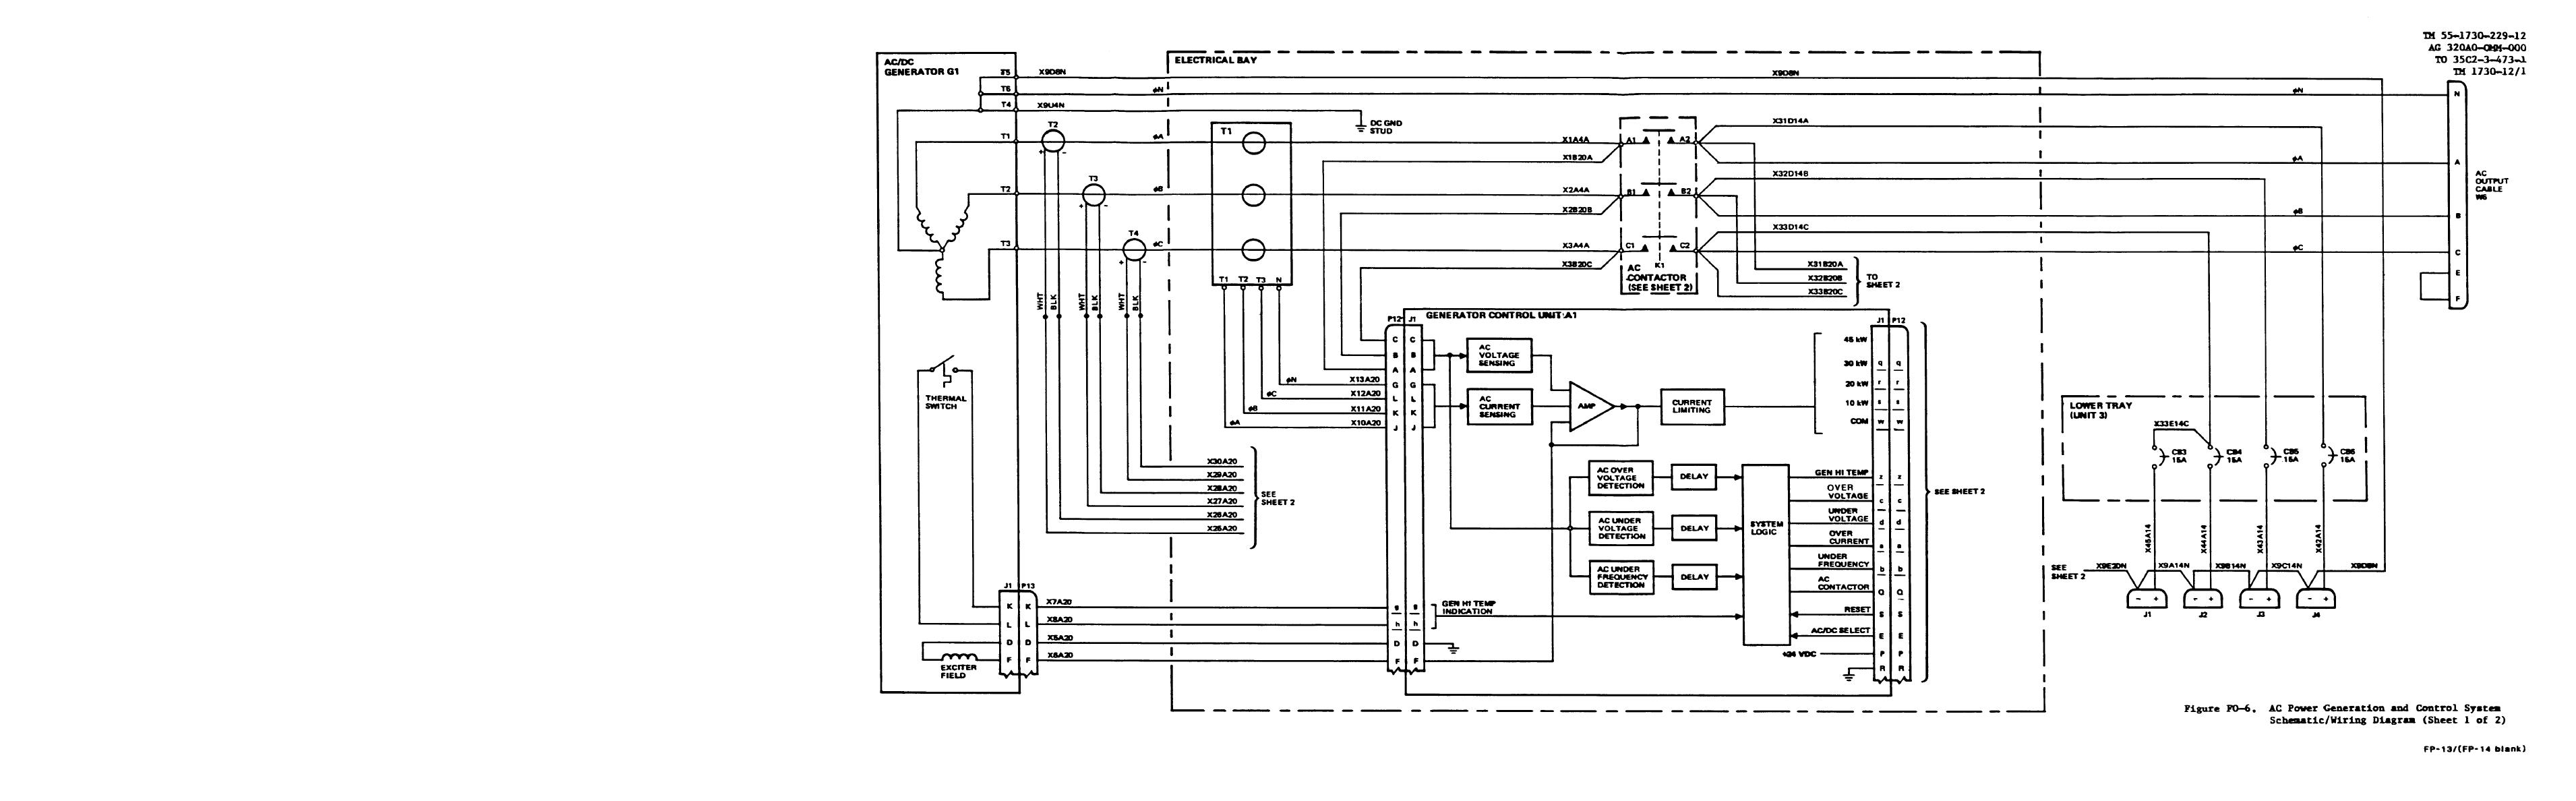 Figure Fo 6 Ac Power Genartion And Control System Schematic Wiring Diagram Tm 55 1730 229 12 Unit Aviation Multi Output Gted Electrical Hydraulic Pneumatic Agpu Wheel Mounted Self Propelled Towable Manual Page Navigation